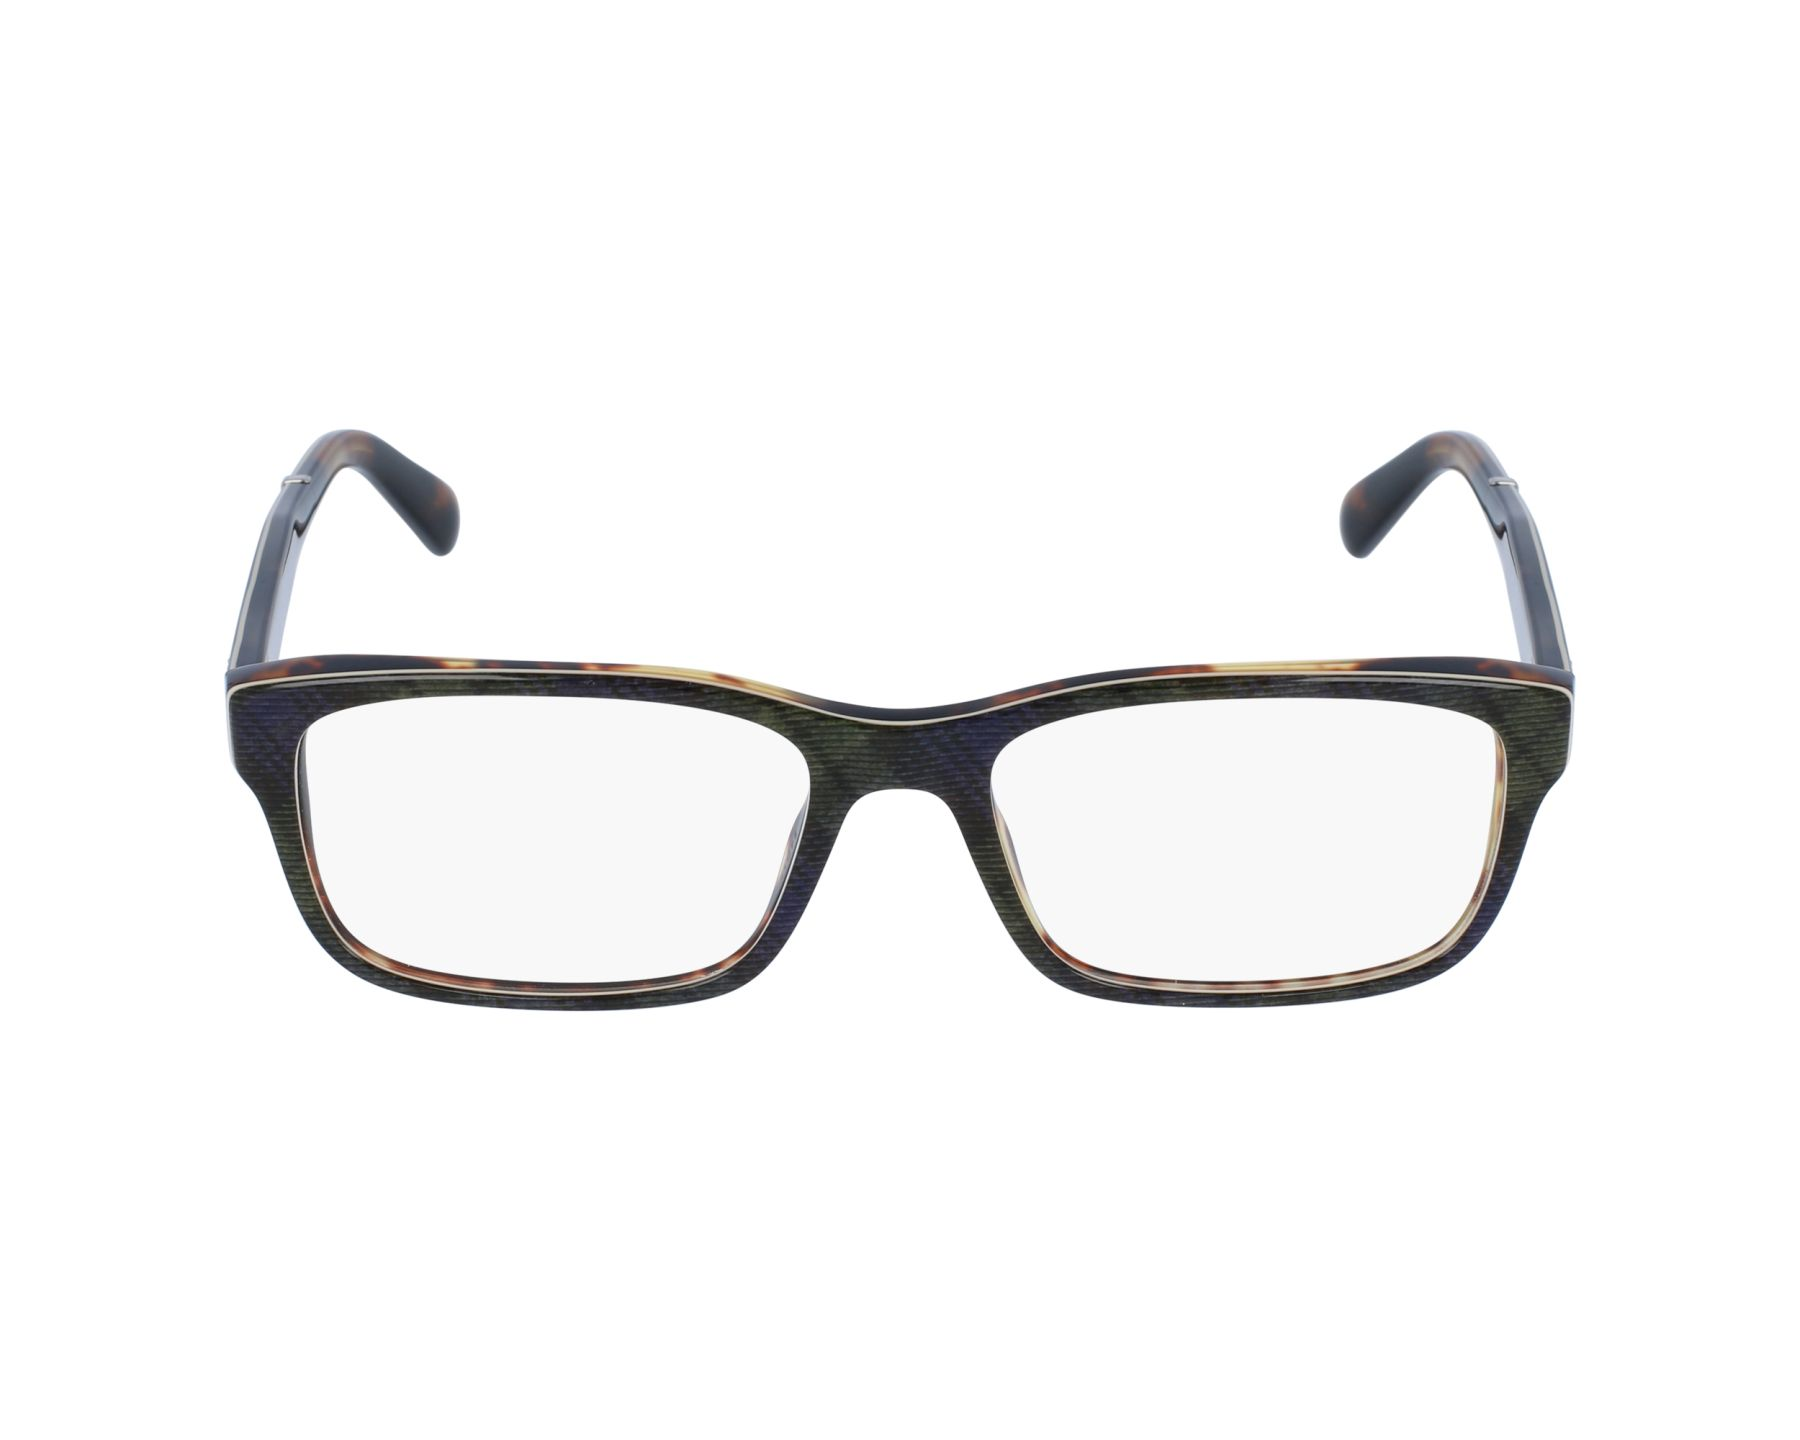 Ralph Lauren Eyeglasses Ph 2163 5621 Green Visio Net Co Uk